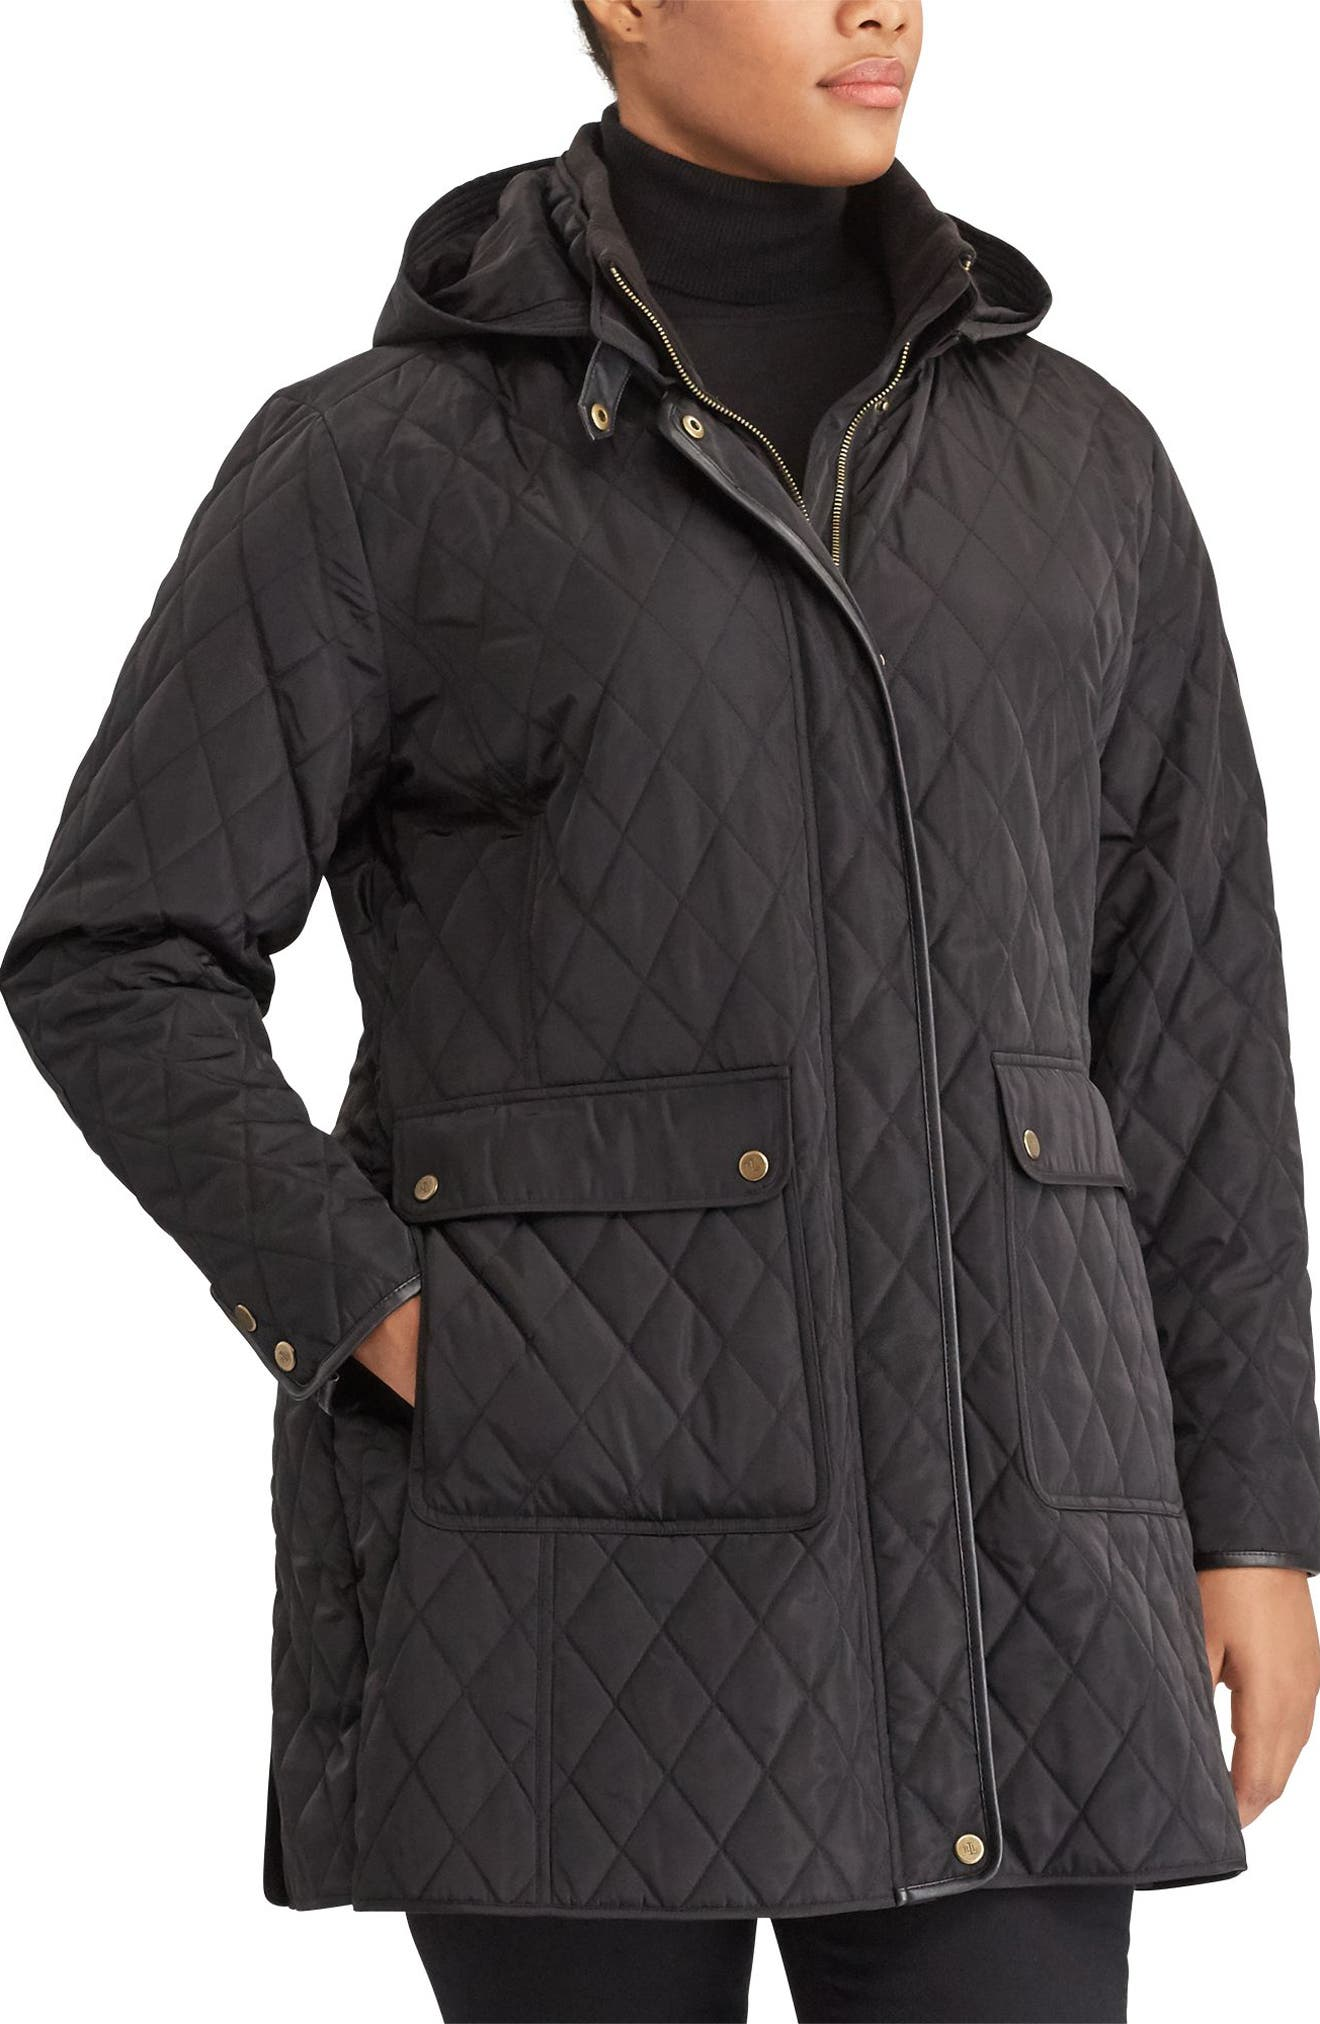 Main Image - Lauren Ralph Lauren Diamond Quilted Jacket with Faux Leather Trim